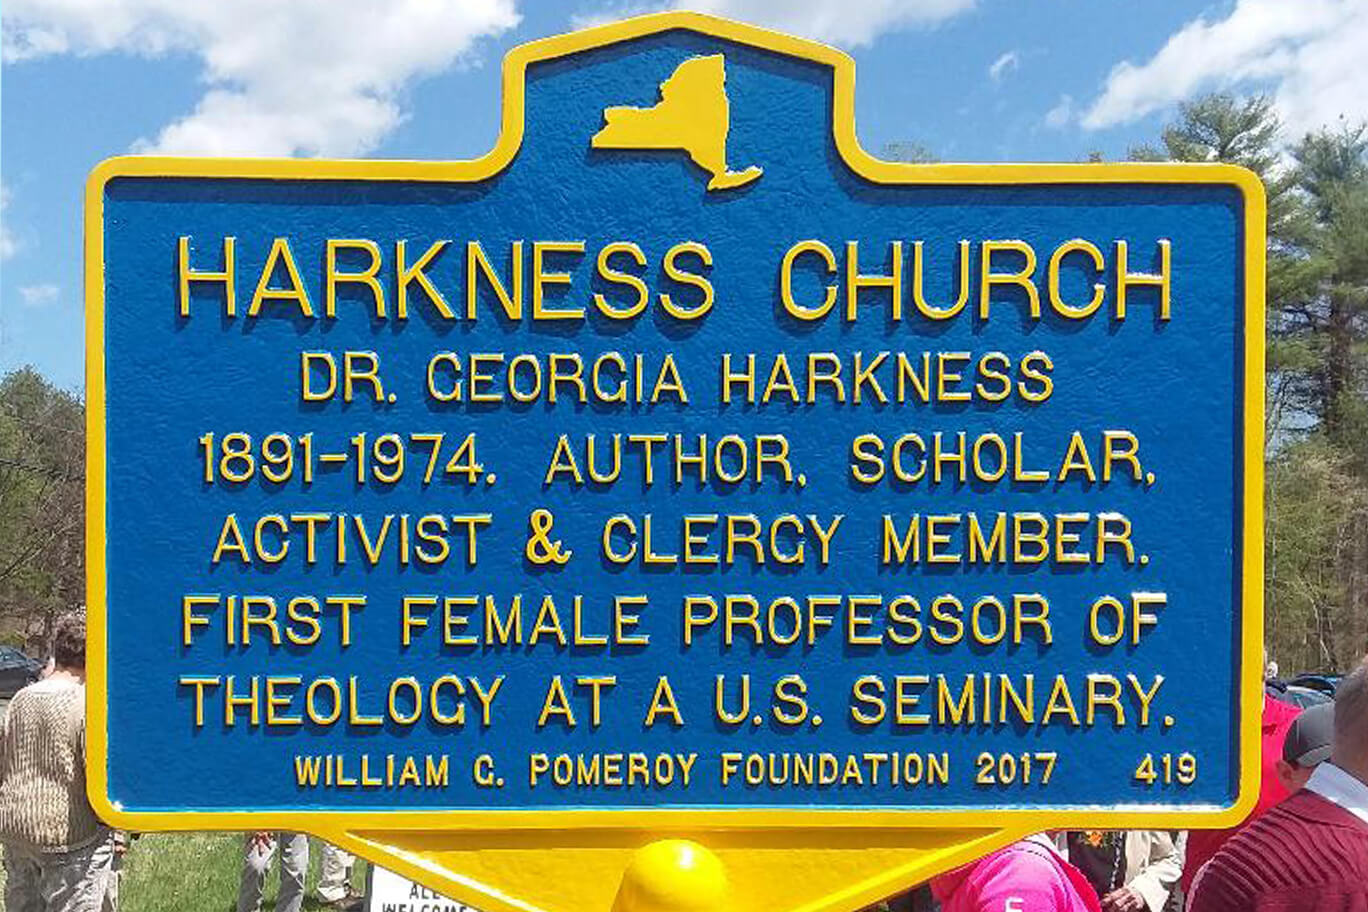 Harkness Church historic marker